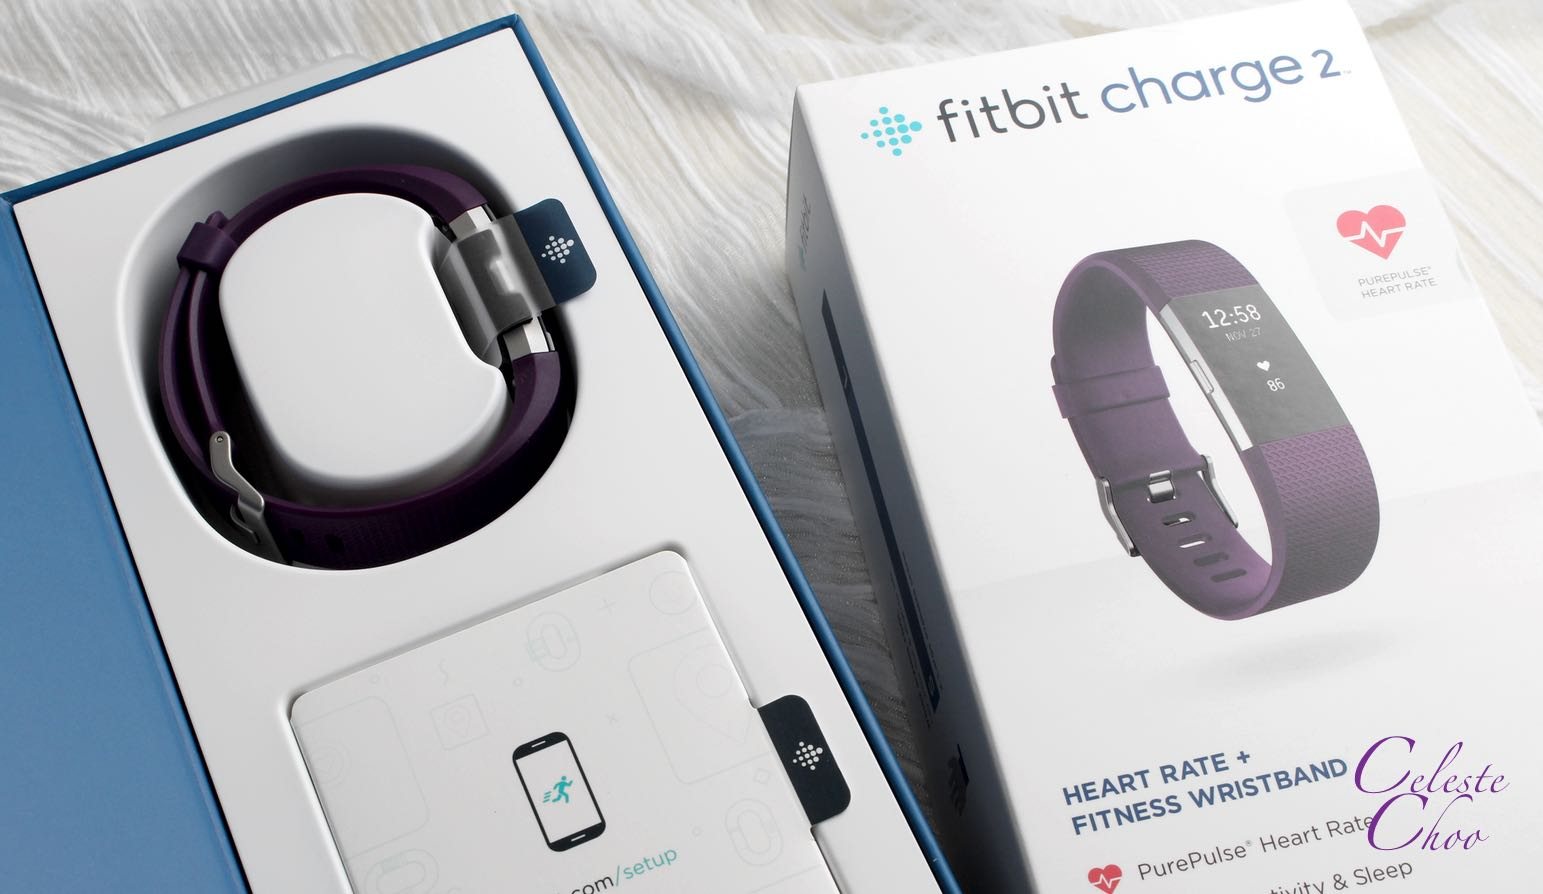 how to get fitbit flight